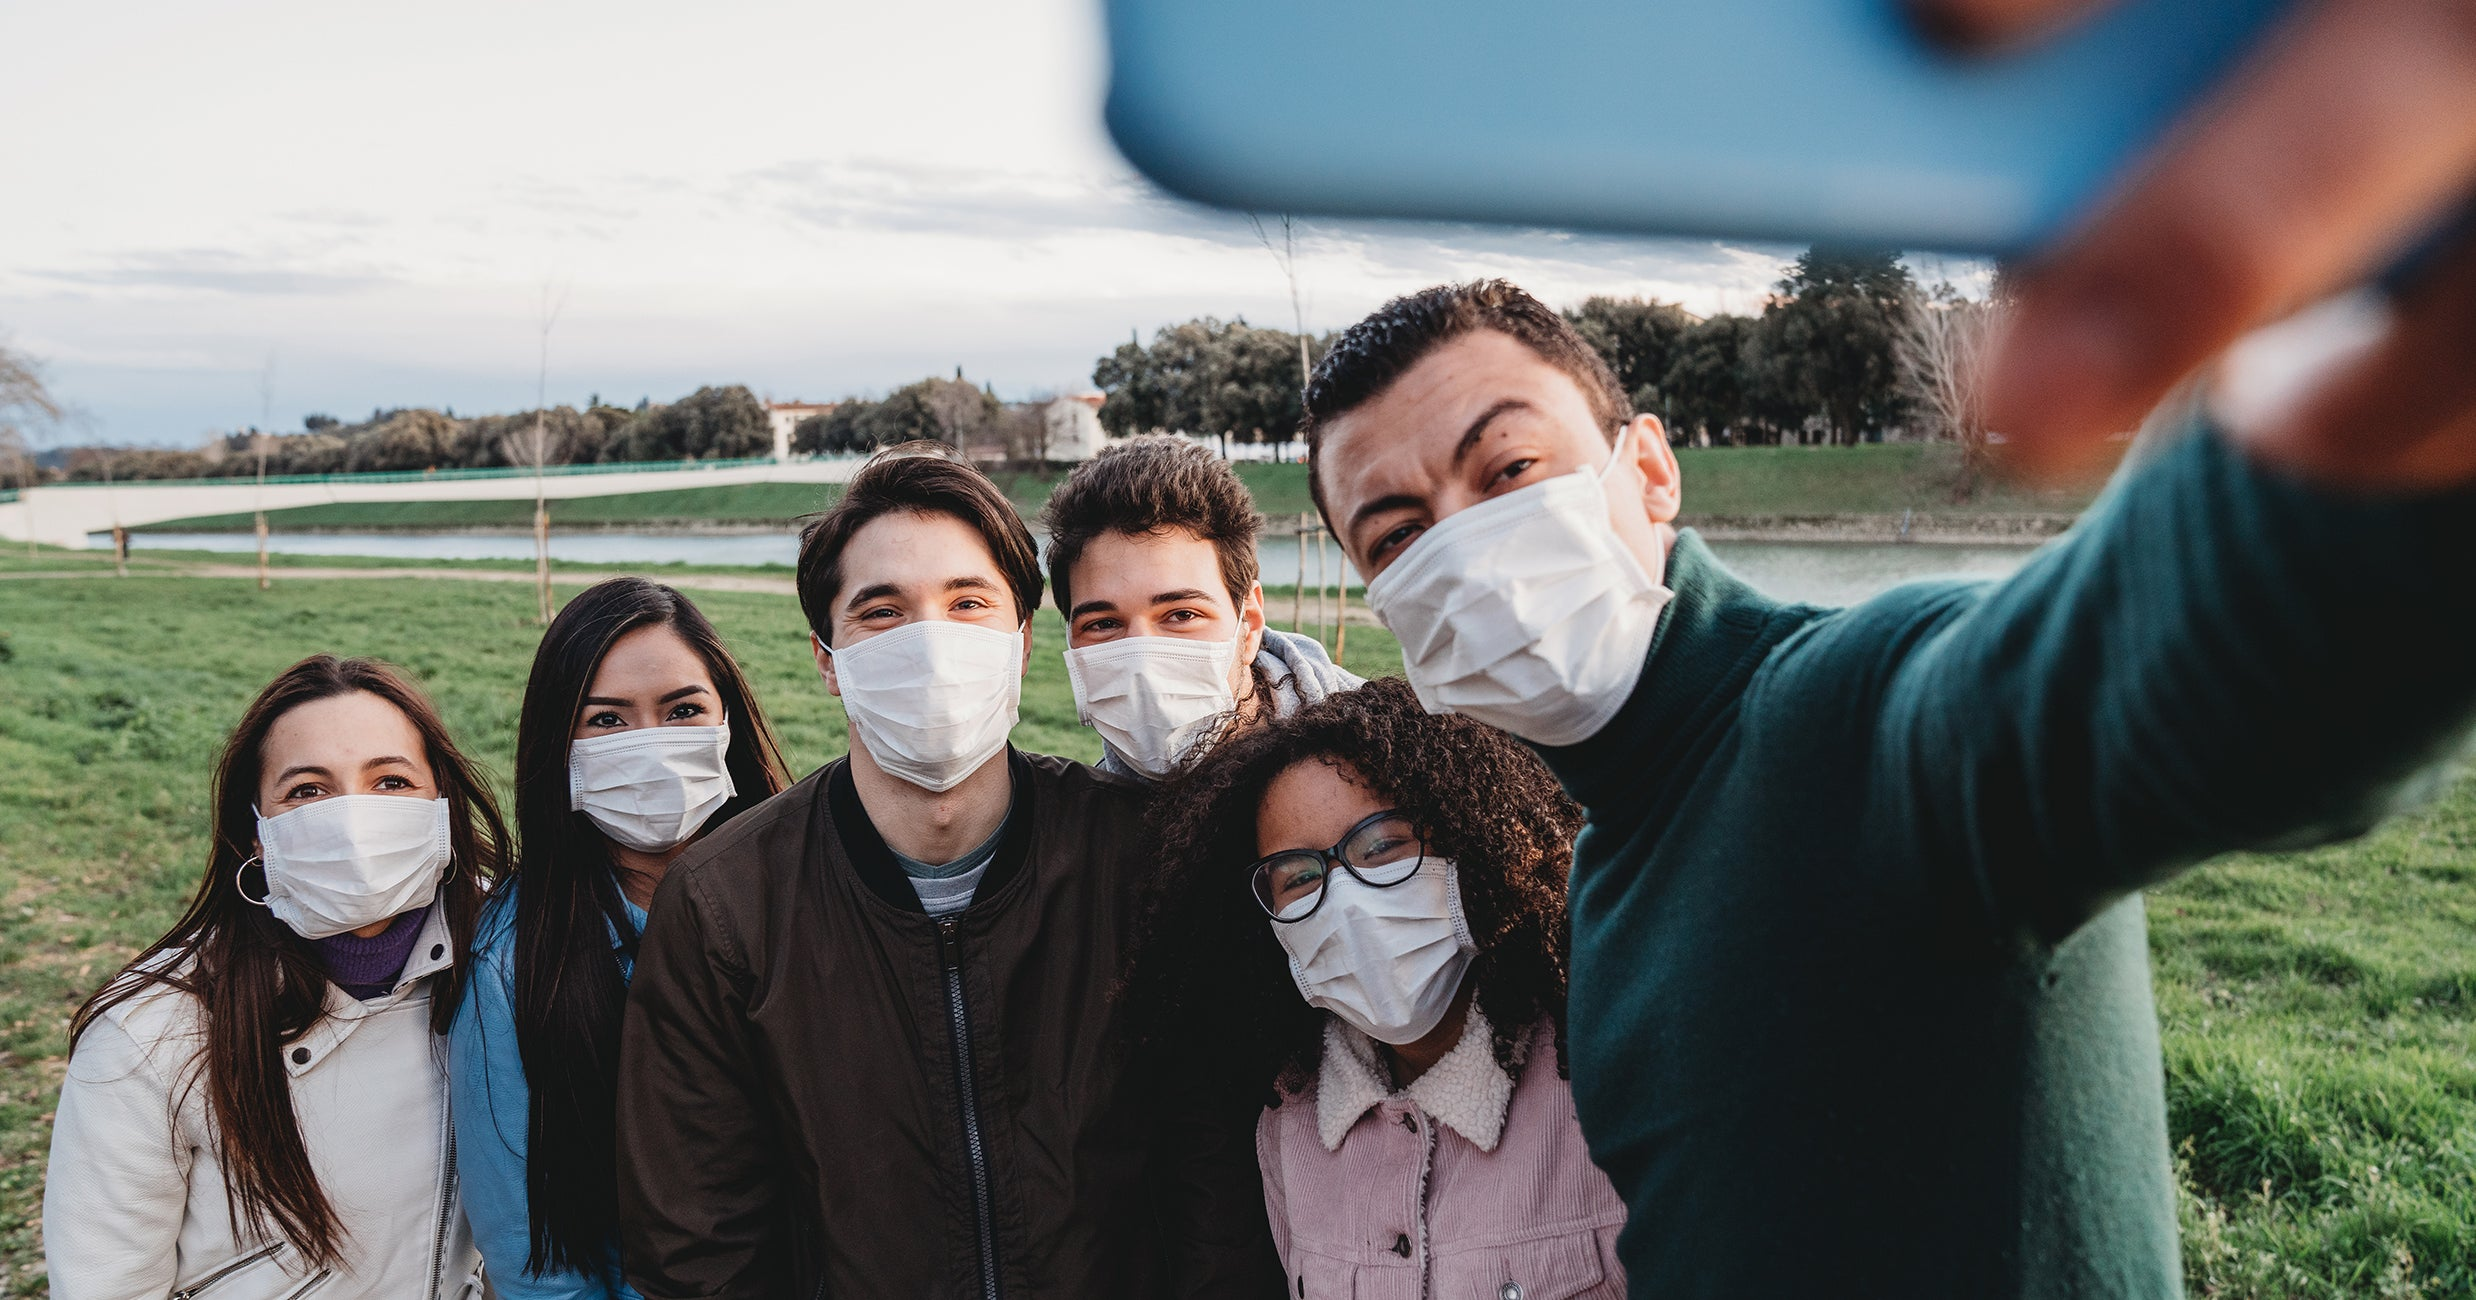 For YouTubers, Quarantine Content Is The New Normal